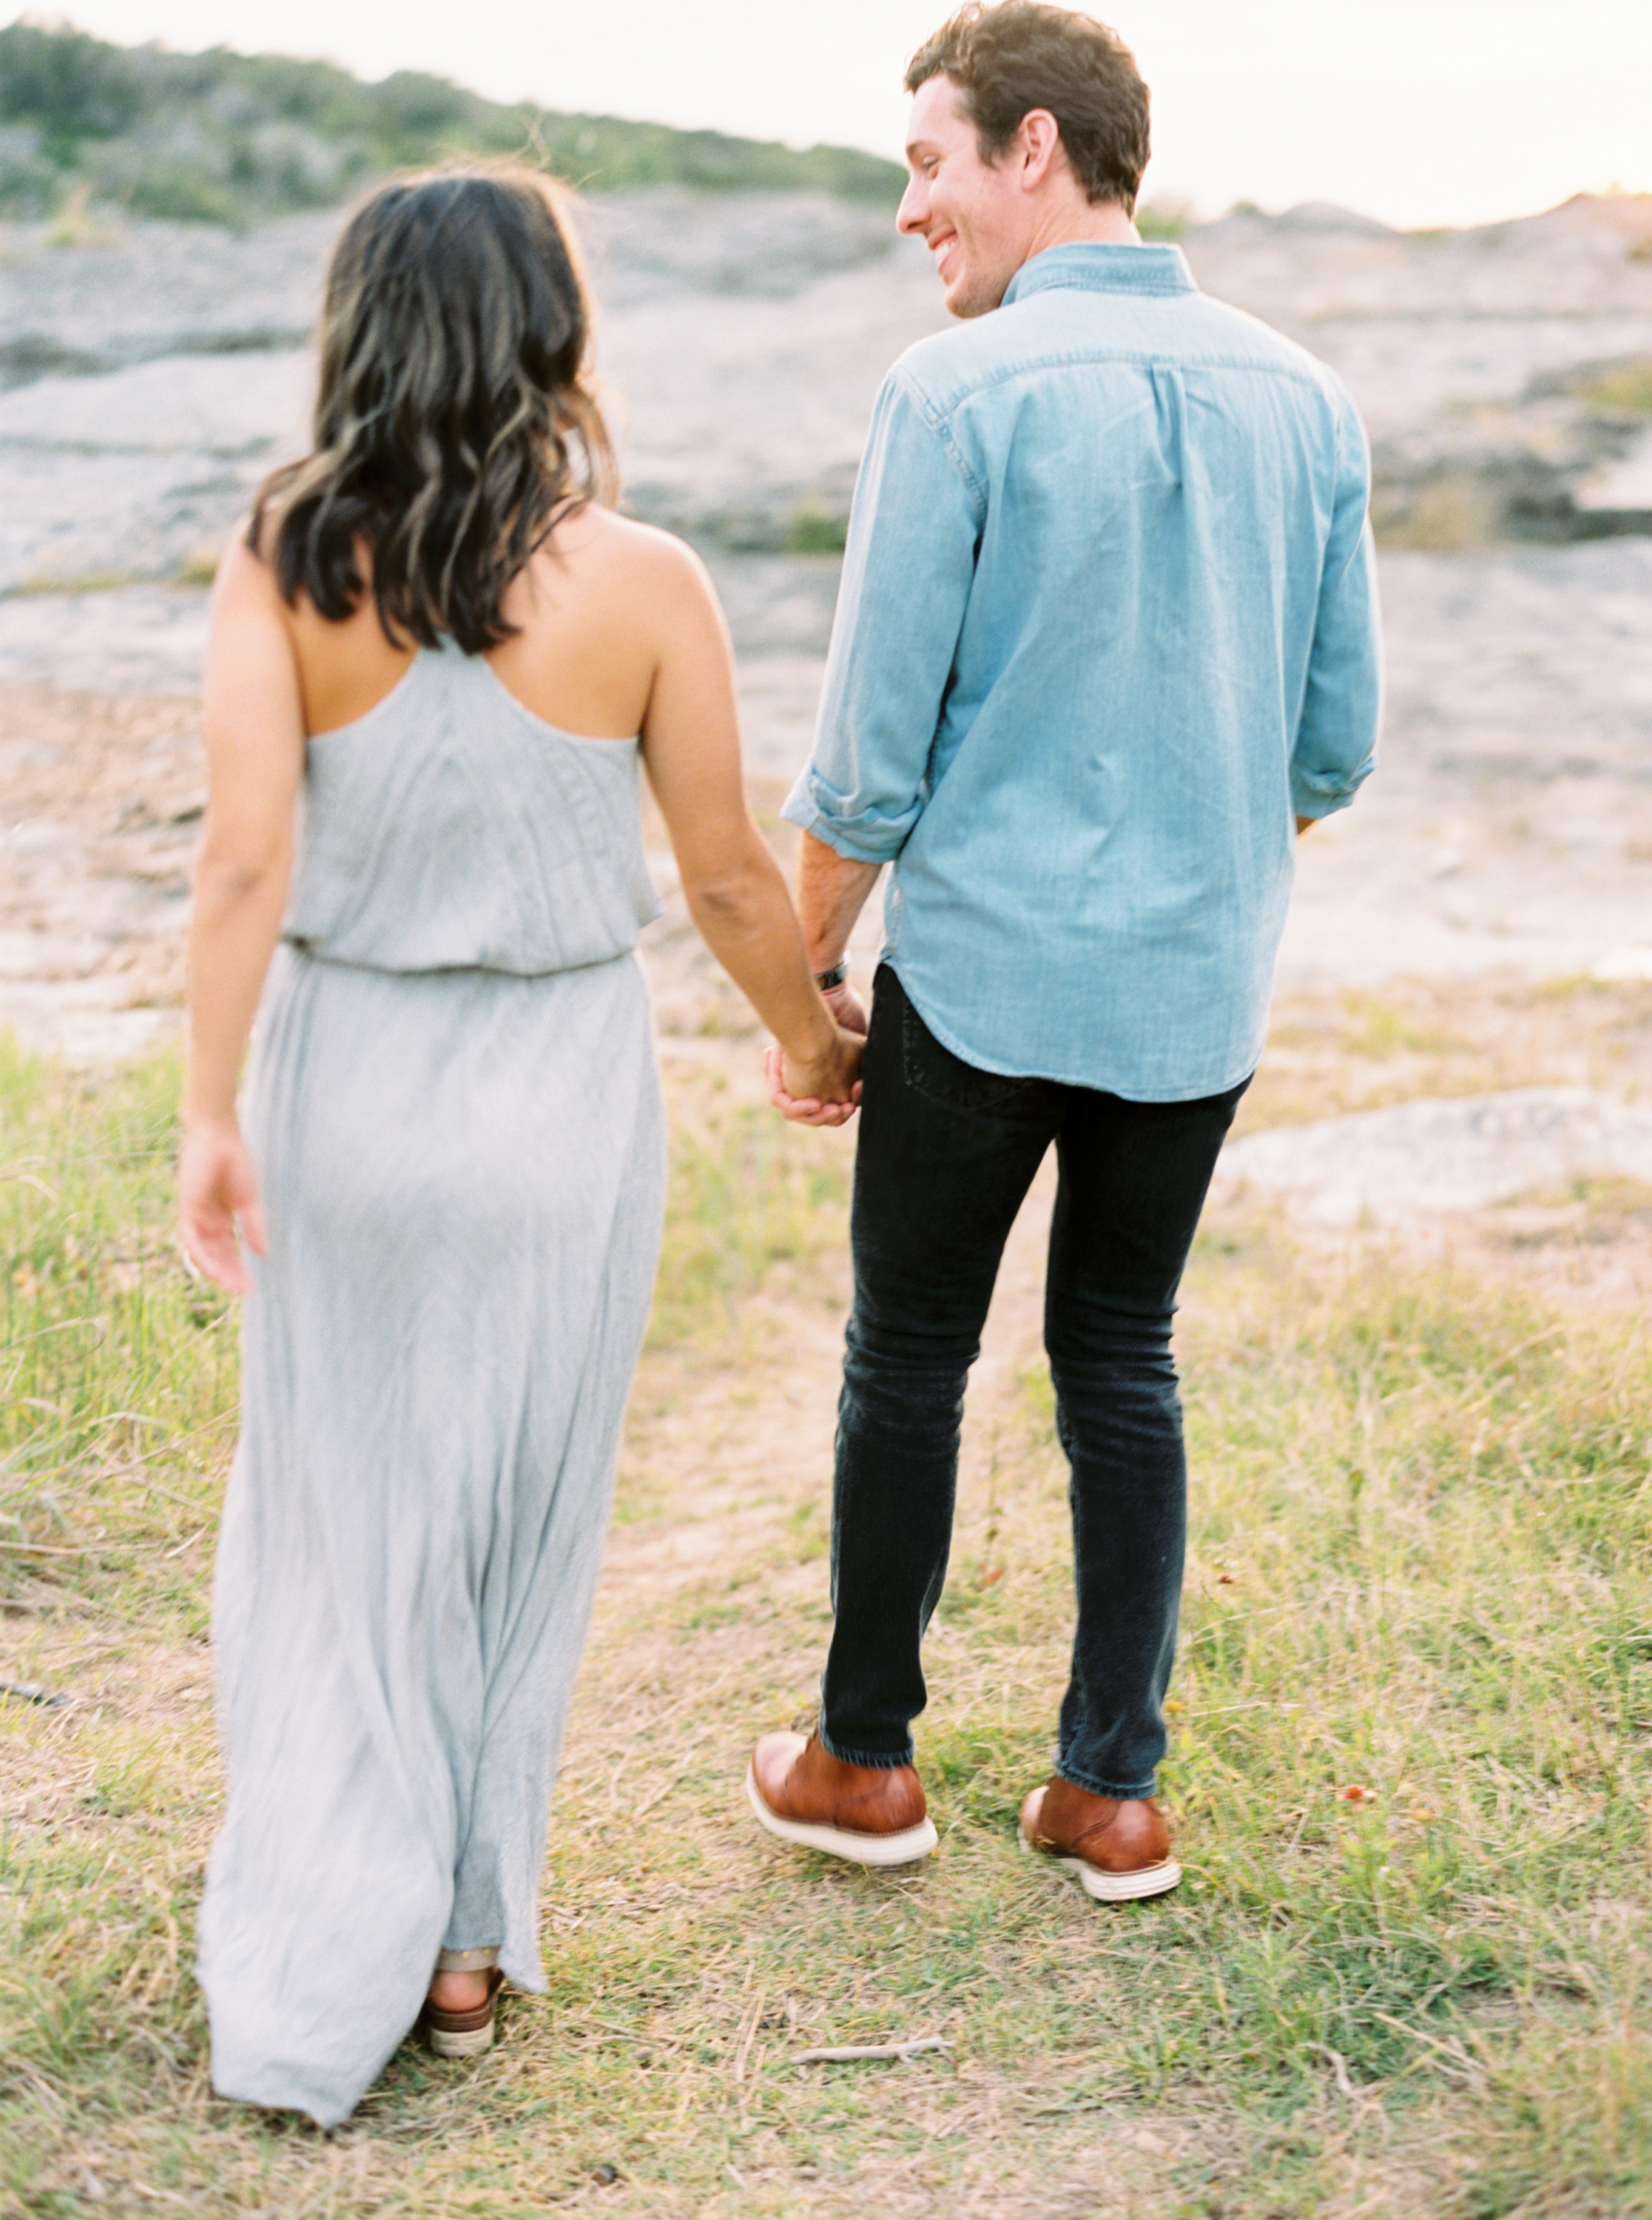 Engagement Session Outfits-19.jpg